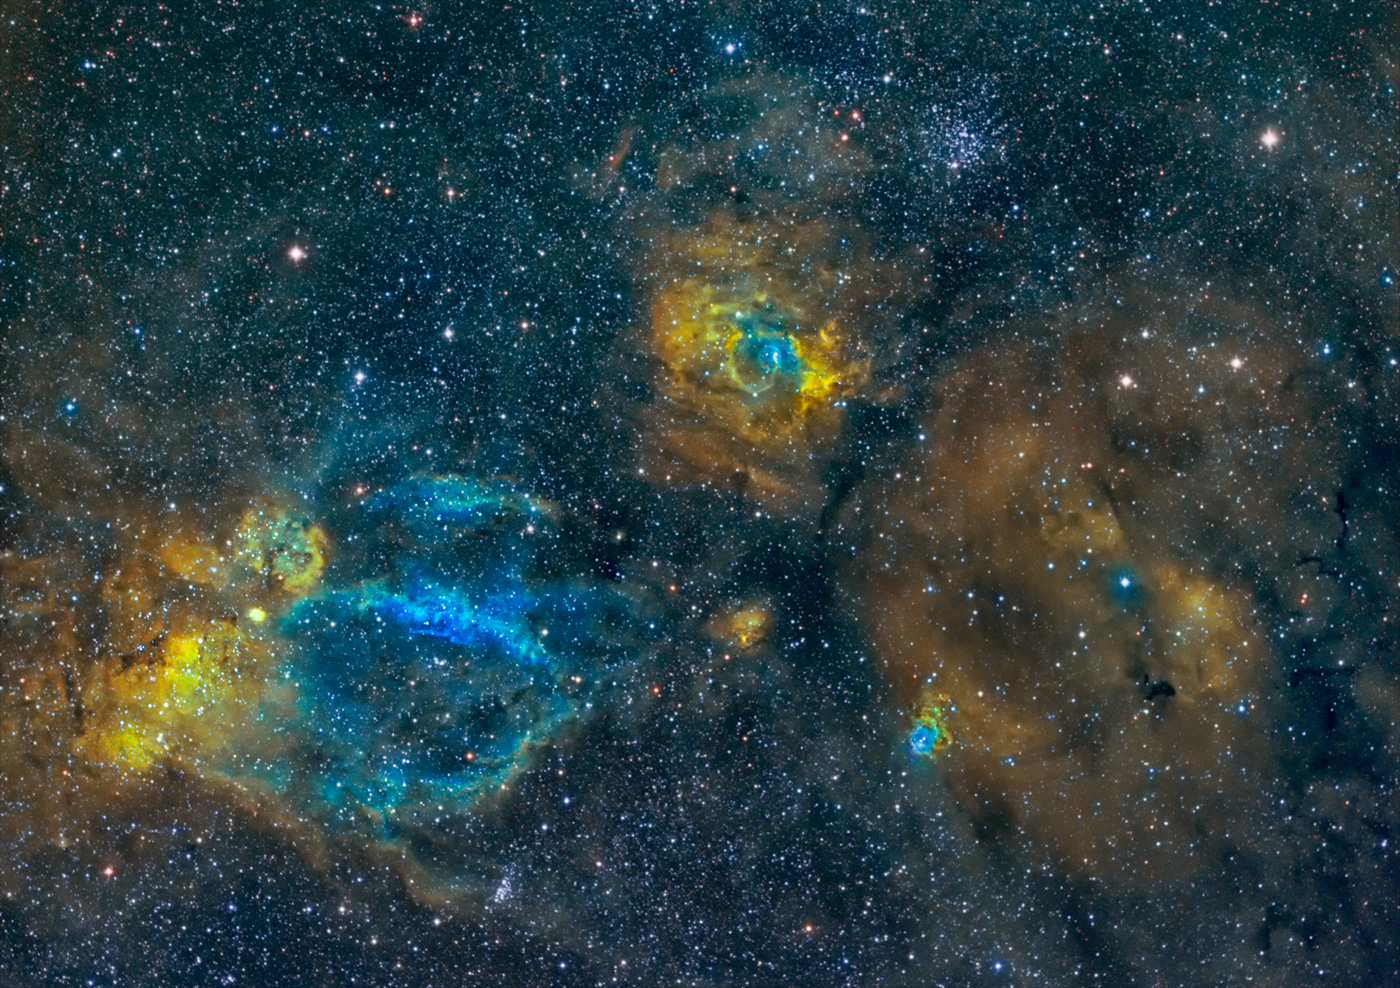 Sh2-157 Claw and NGC7635 Bubble Nebulae in HST